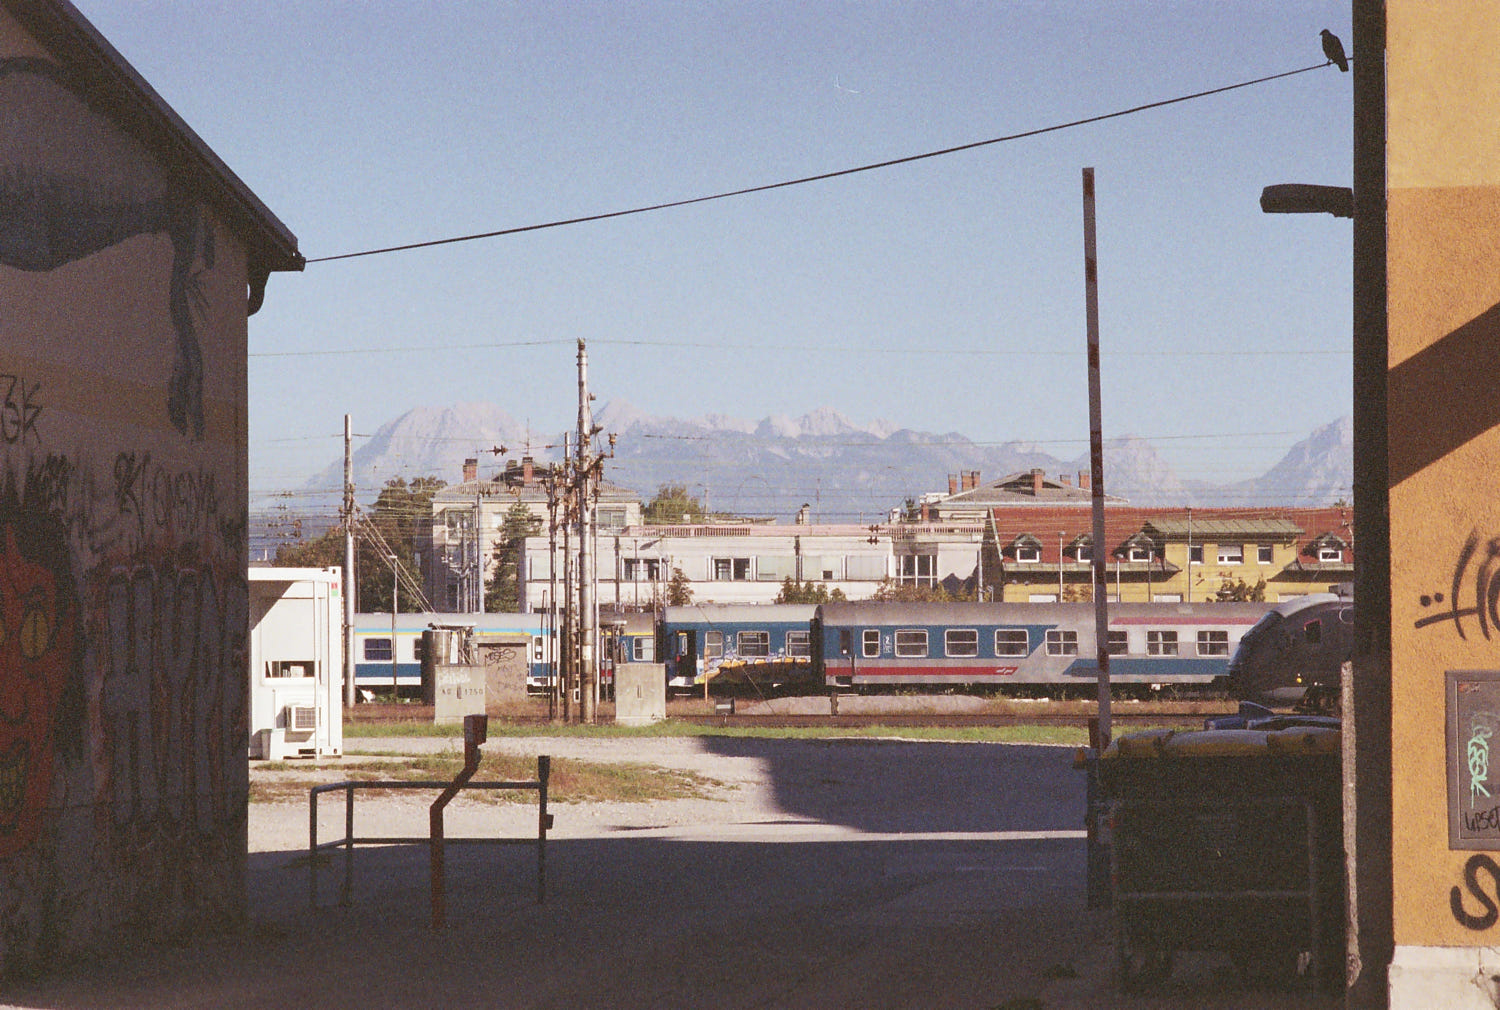 Passenger train cars in red, blue, and silver livery wait in their tracks. Behind, low buildings, and even further, pale mountains. The sky above is a daytime blue. Framing the scene on the left is the shadowed, graffitied wall of a building. A dumpster sits next to the sunlit yellow wall on the right. A line connects the two buildings, upon which a bird sits, shaded